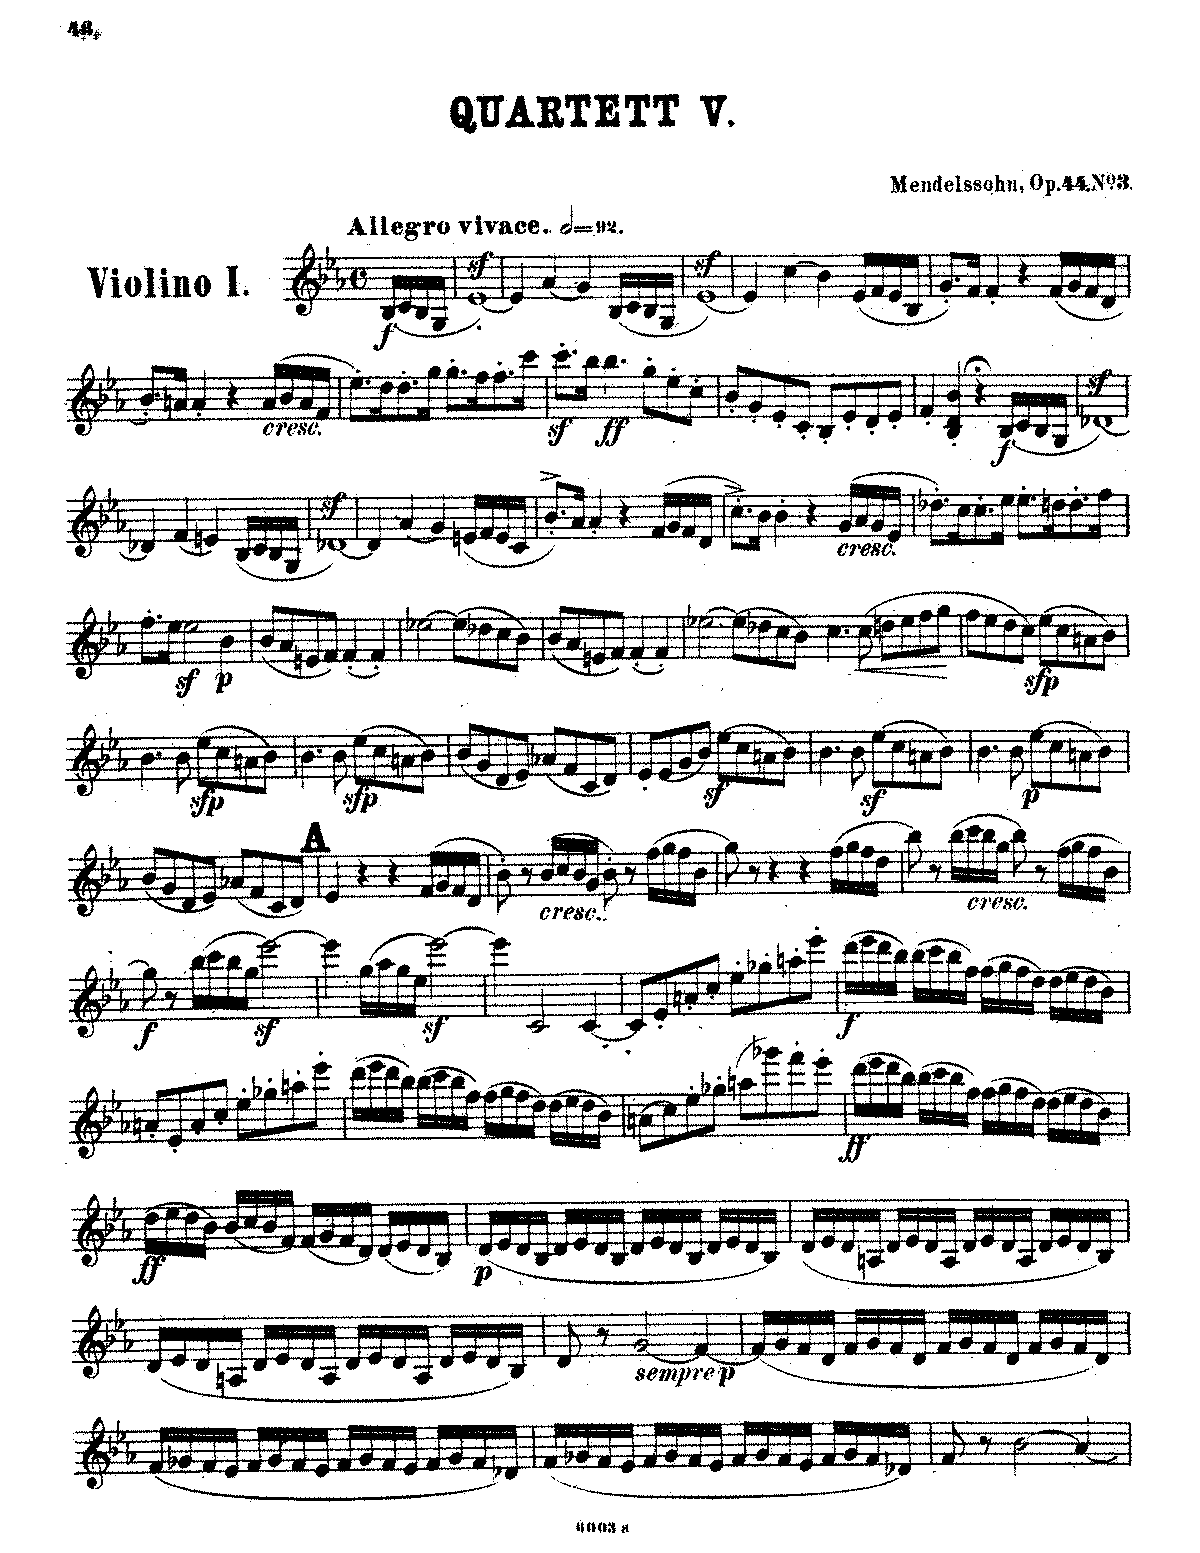 PMLP27020-Mendelssohn - String Quartet No. 5 (Violin 1 part).pdf